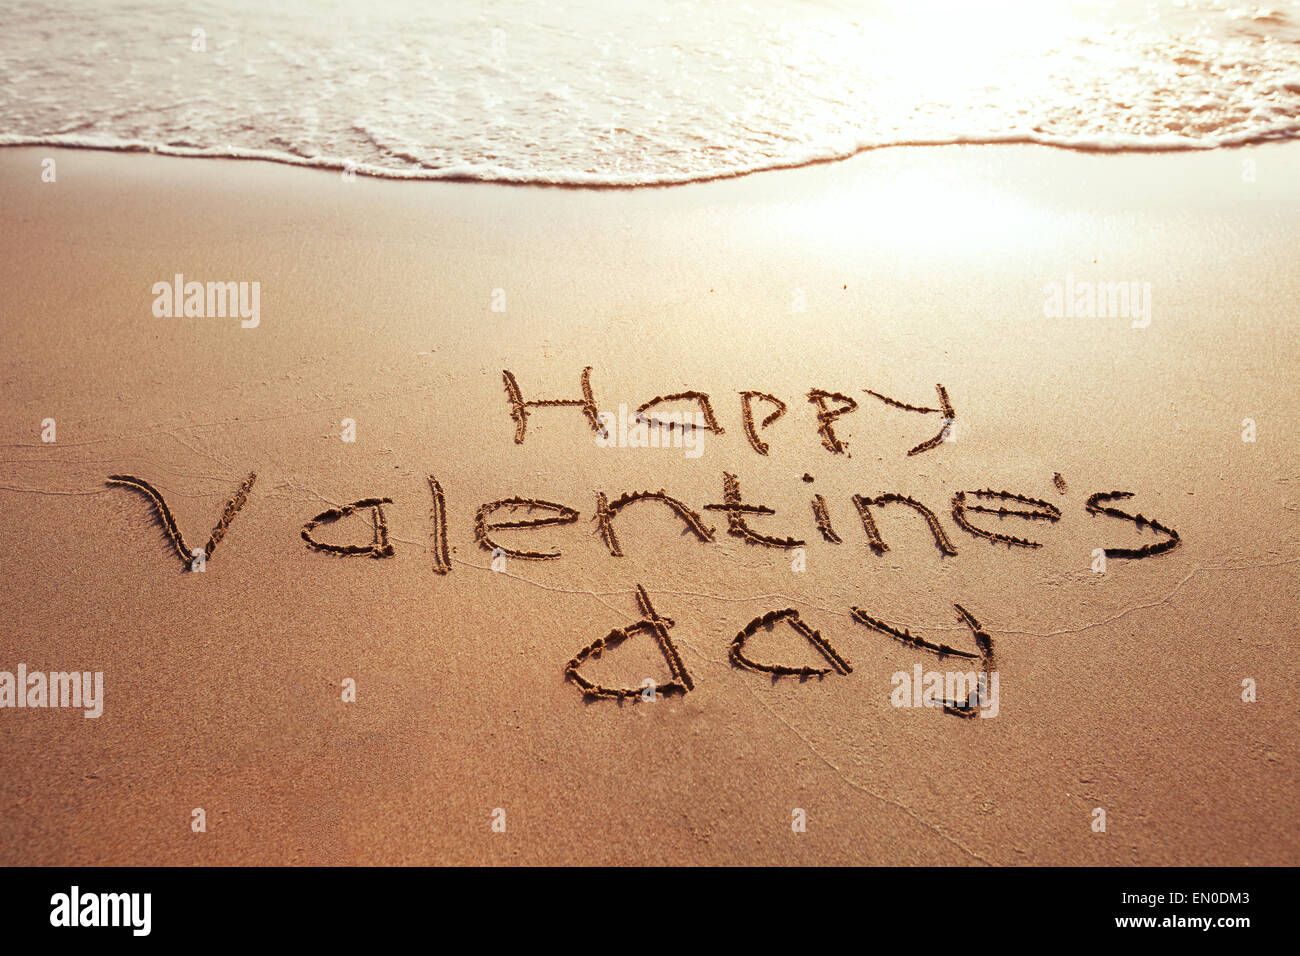 Valentine's Day card, greetings on the beach - Stock Image